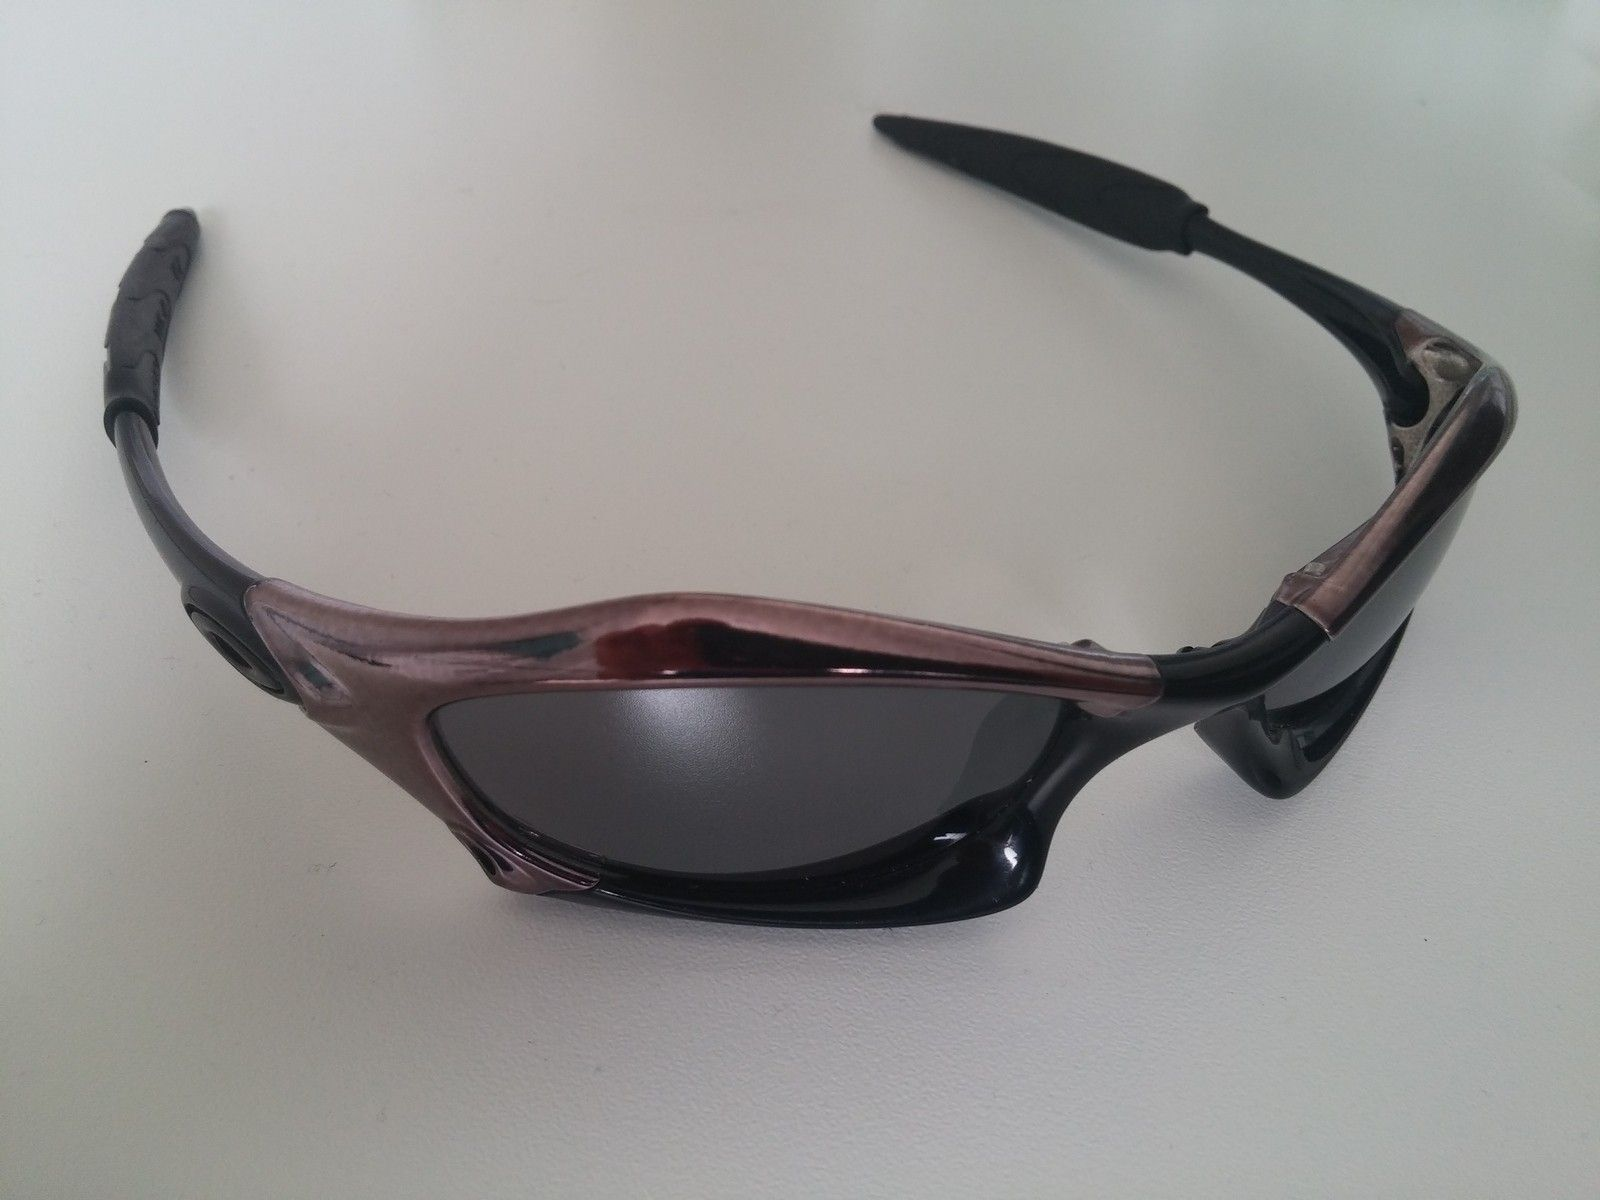 Help with old pair please! - uploadfromtaptalk1436703991768.jpg